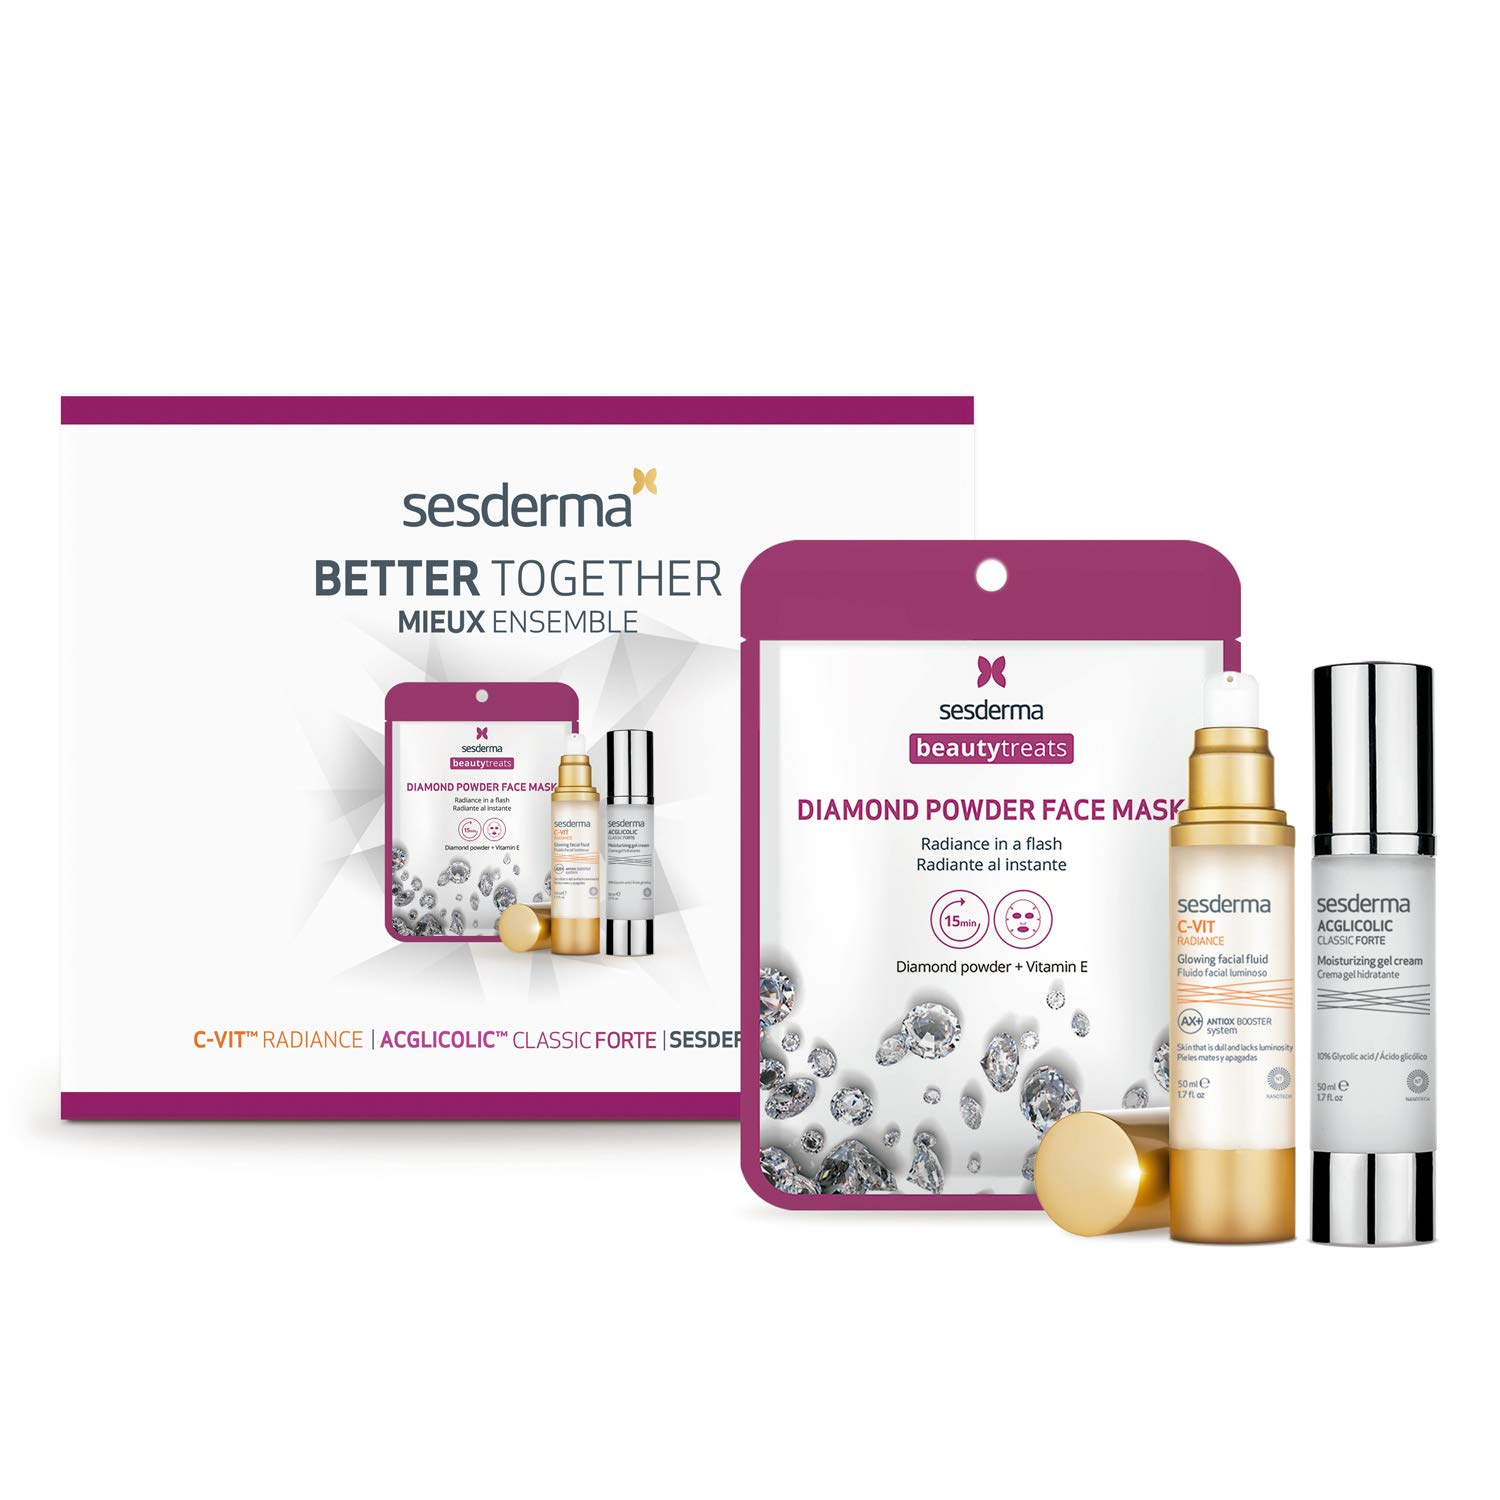 Sesderma Valentine's Promo Pack C-VIT RADIANCE Glowing Fluid 1.7 fl. Oz + ACGLICOLIC CLASSIC FORTE Gel Cream 1.7 fl. Oz + BeautyTreats DIAMOND POWDER Facial Mask 0.75 fl. Oz, 4.15 fl. oz.